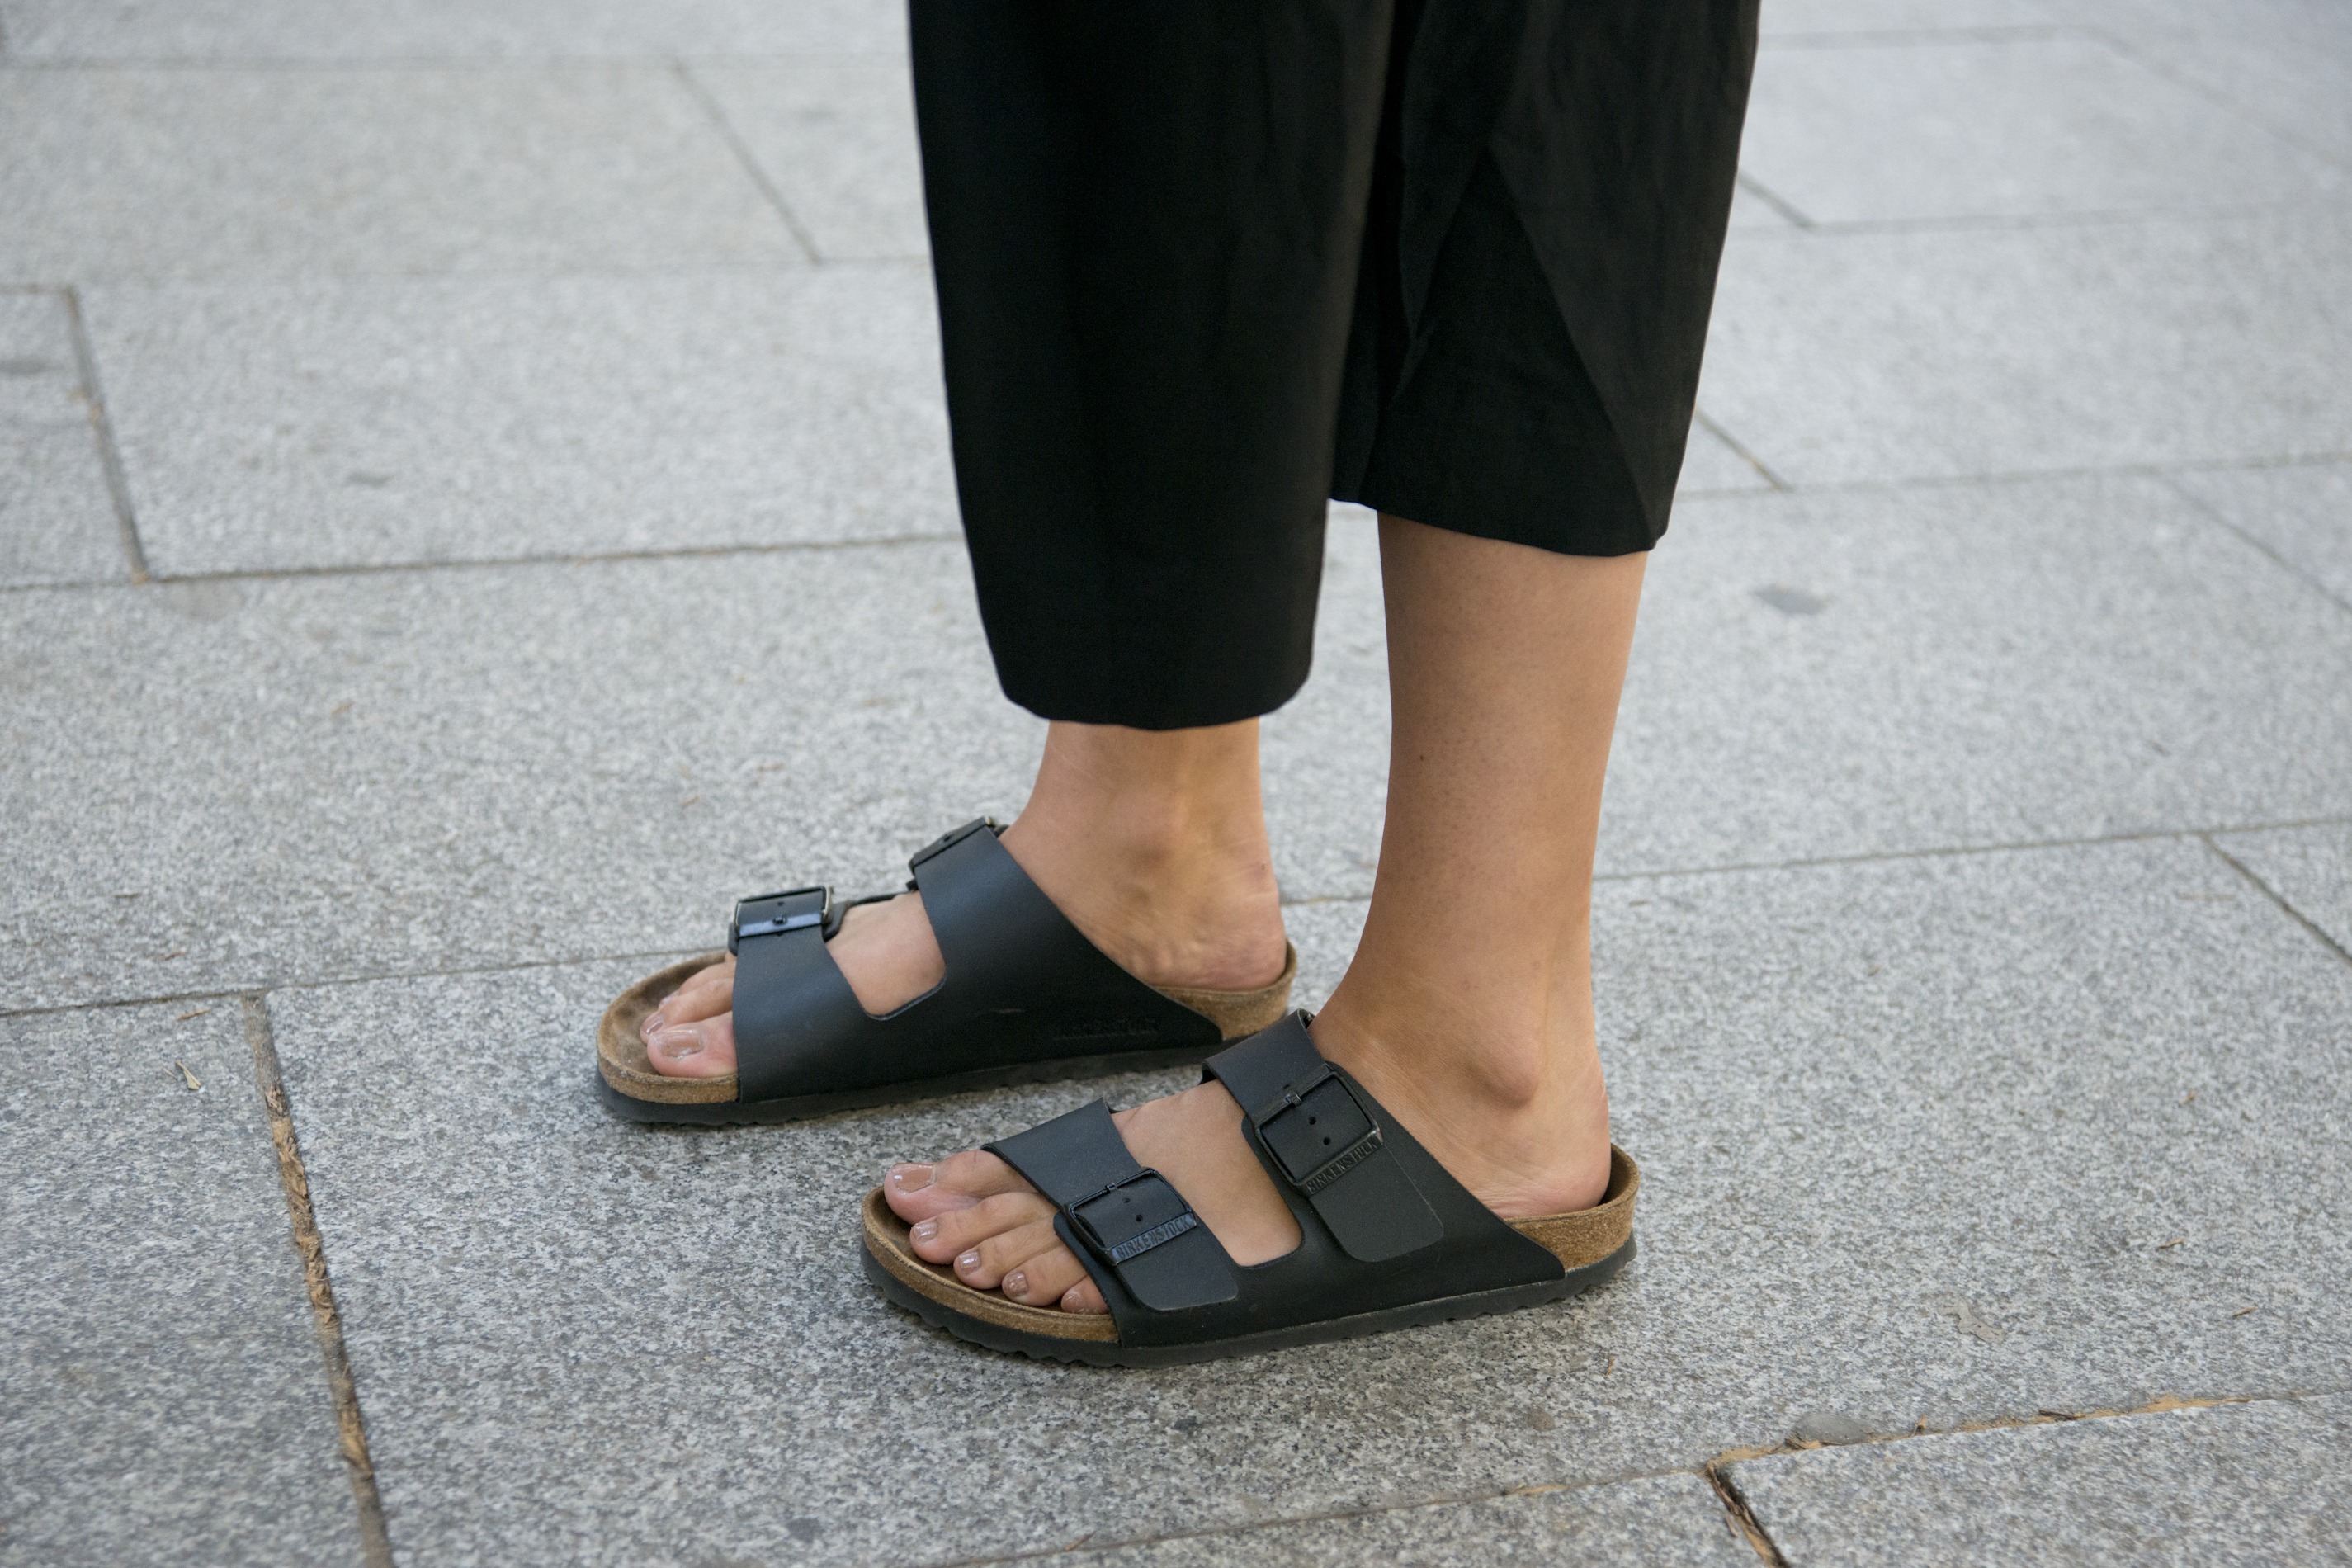 ccea6a1ca090 How Did Birkenstocks Convince Us the Pain of Breaking Them in Was Worth It   - Vox